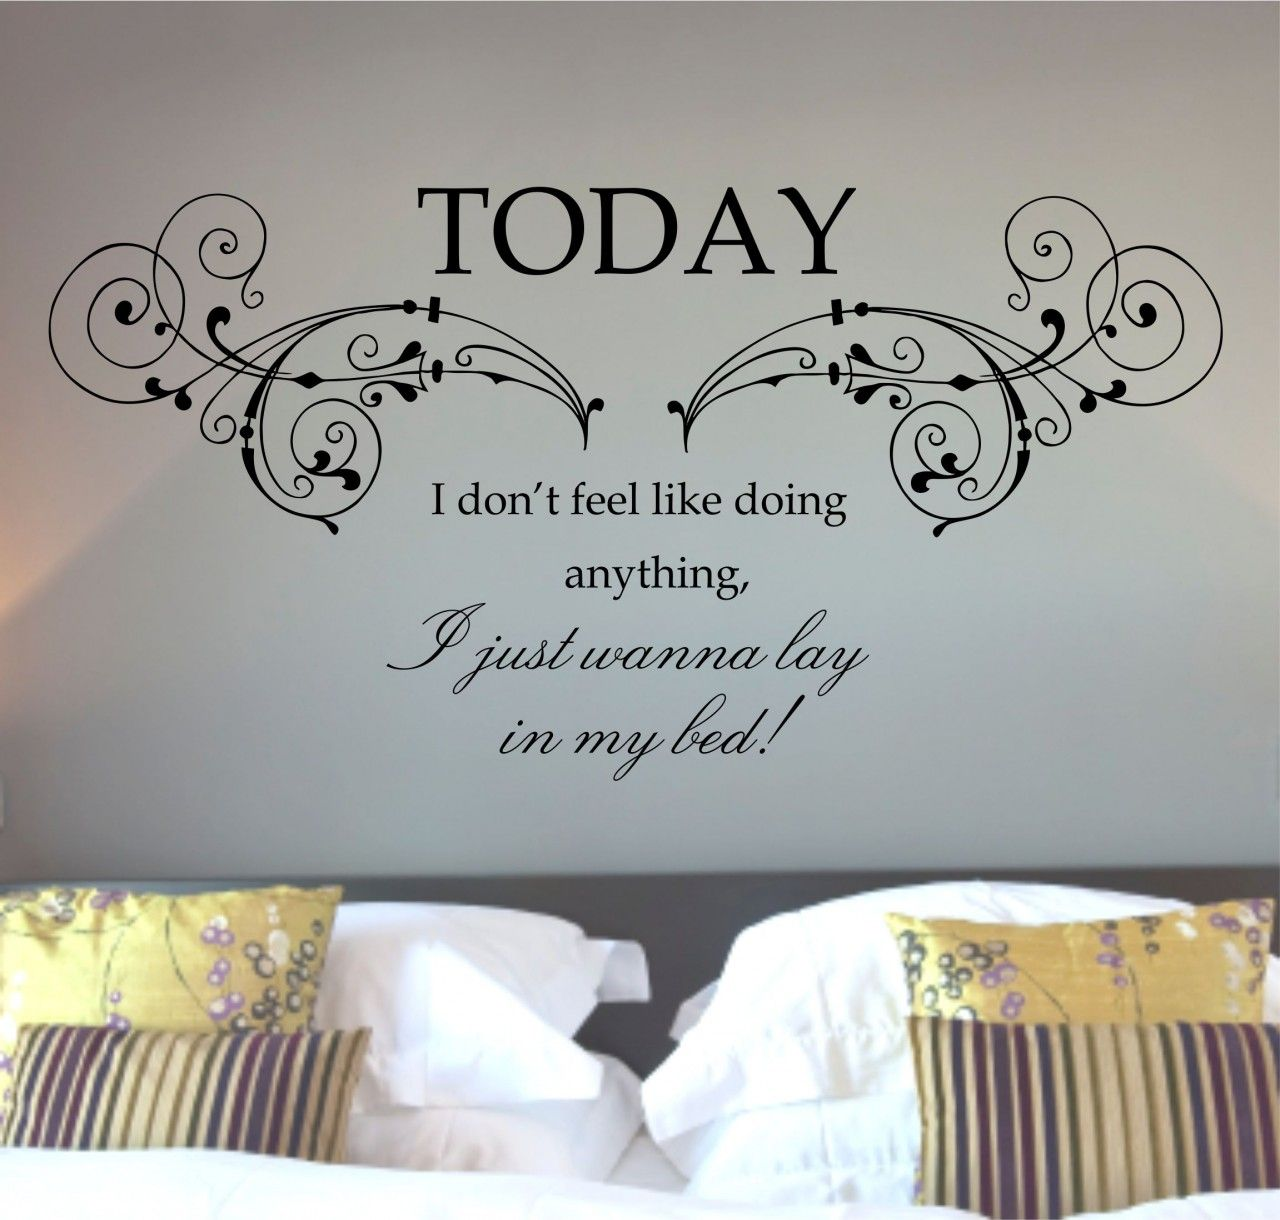 Bedroom wall art quotes - Bedroom Wall Art Quotes